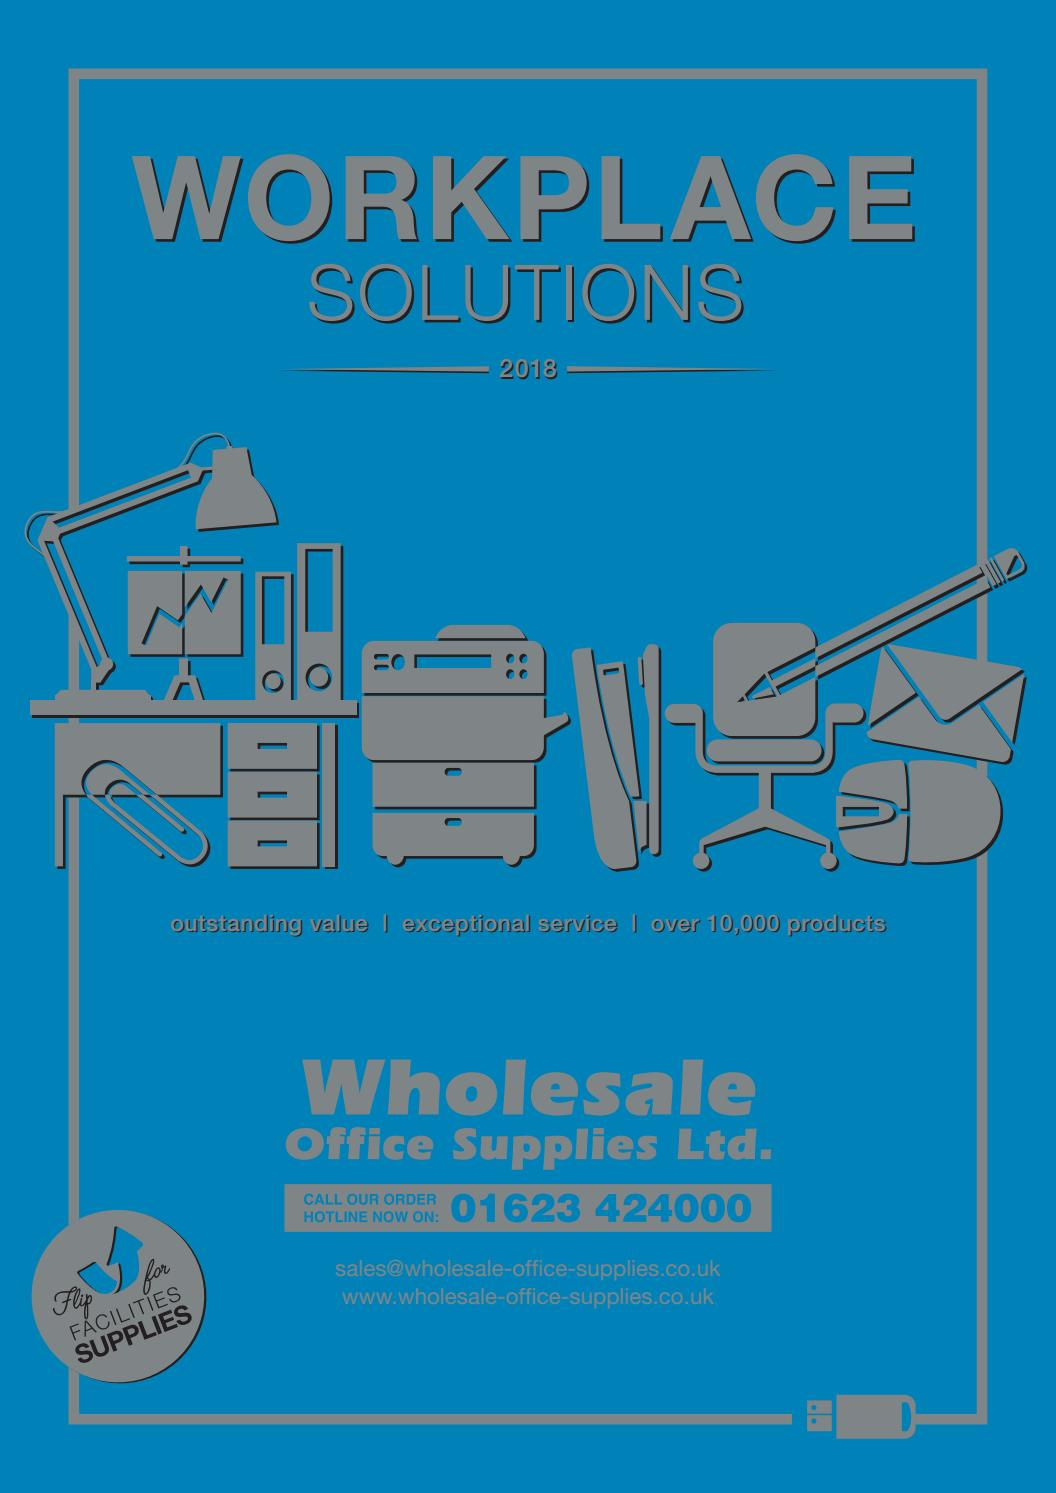 Wholesale Office Supplies - Workplace solutions 2018 by Facets ...